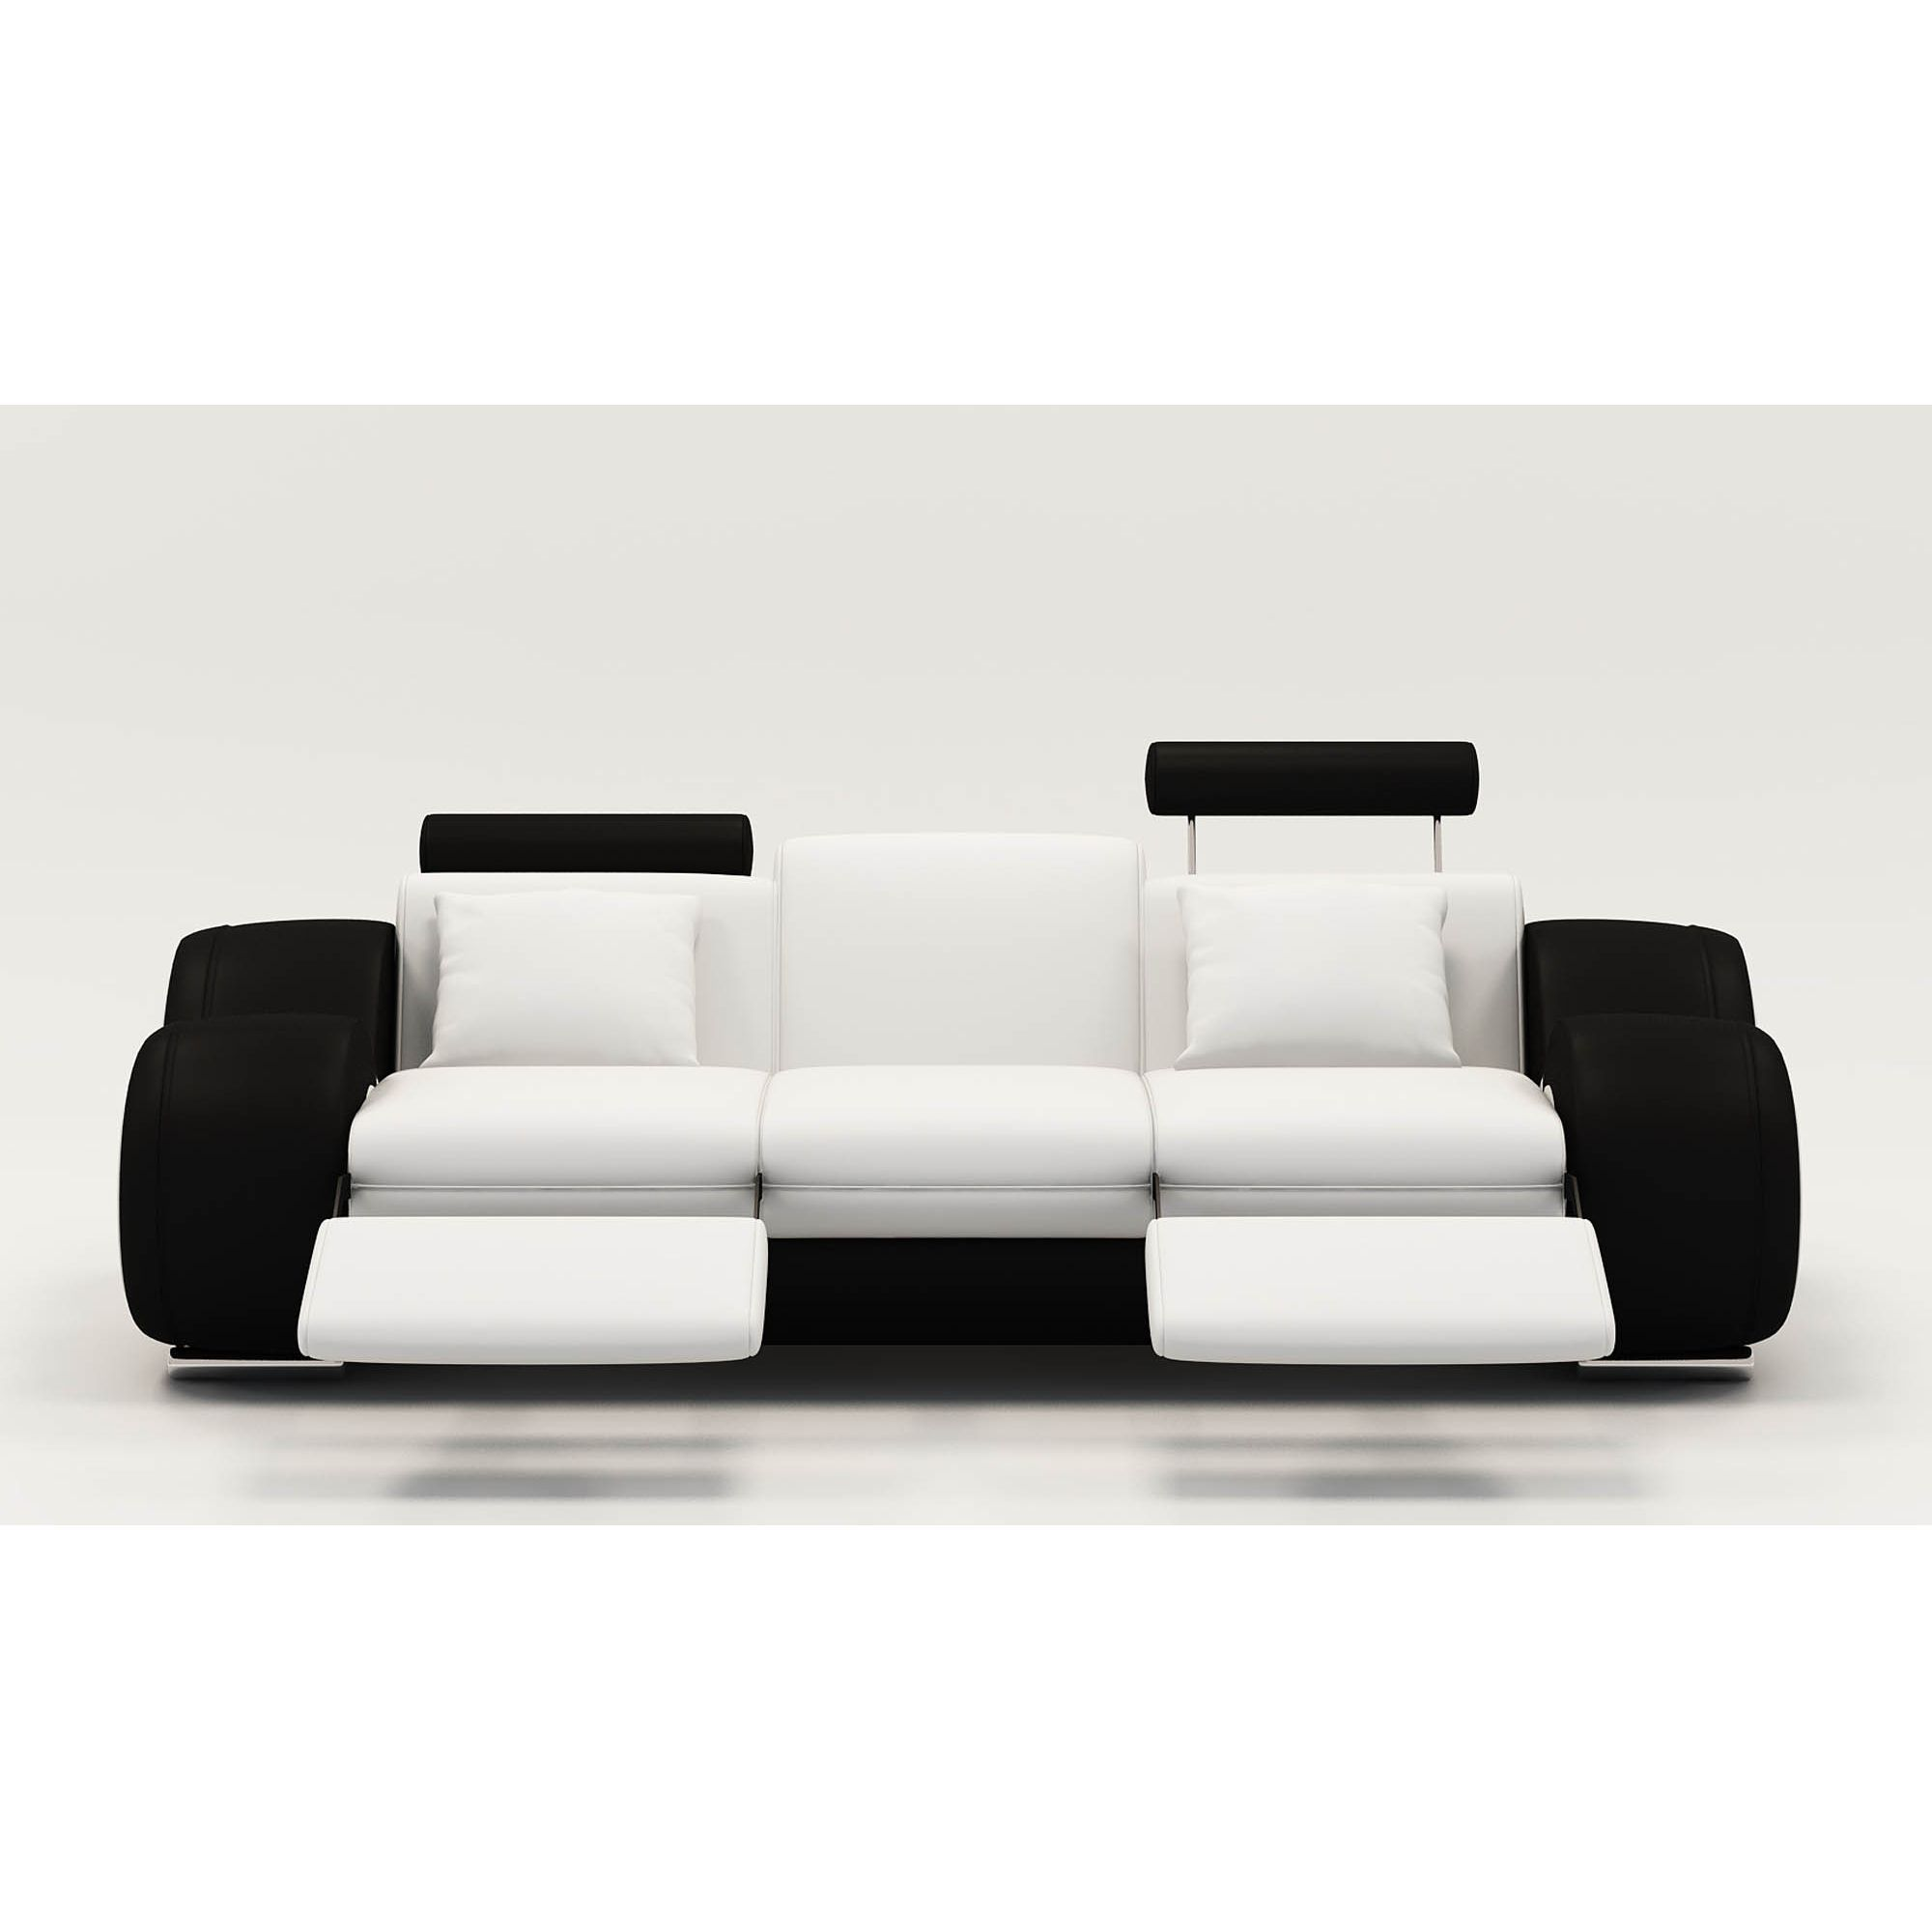 DECO IN PARIS Ensemble Canape Relax Design Places Blanc Et - Canapé 3 places pour salon moderne